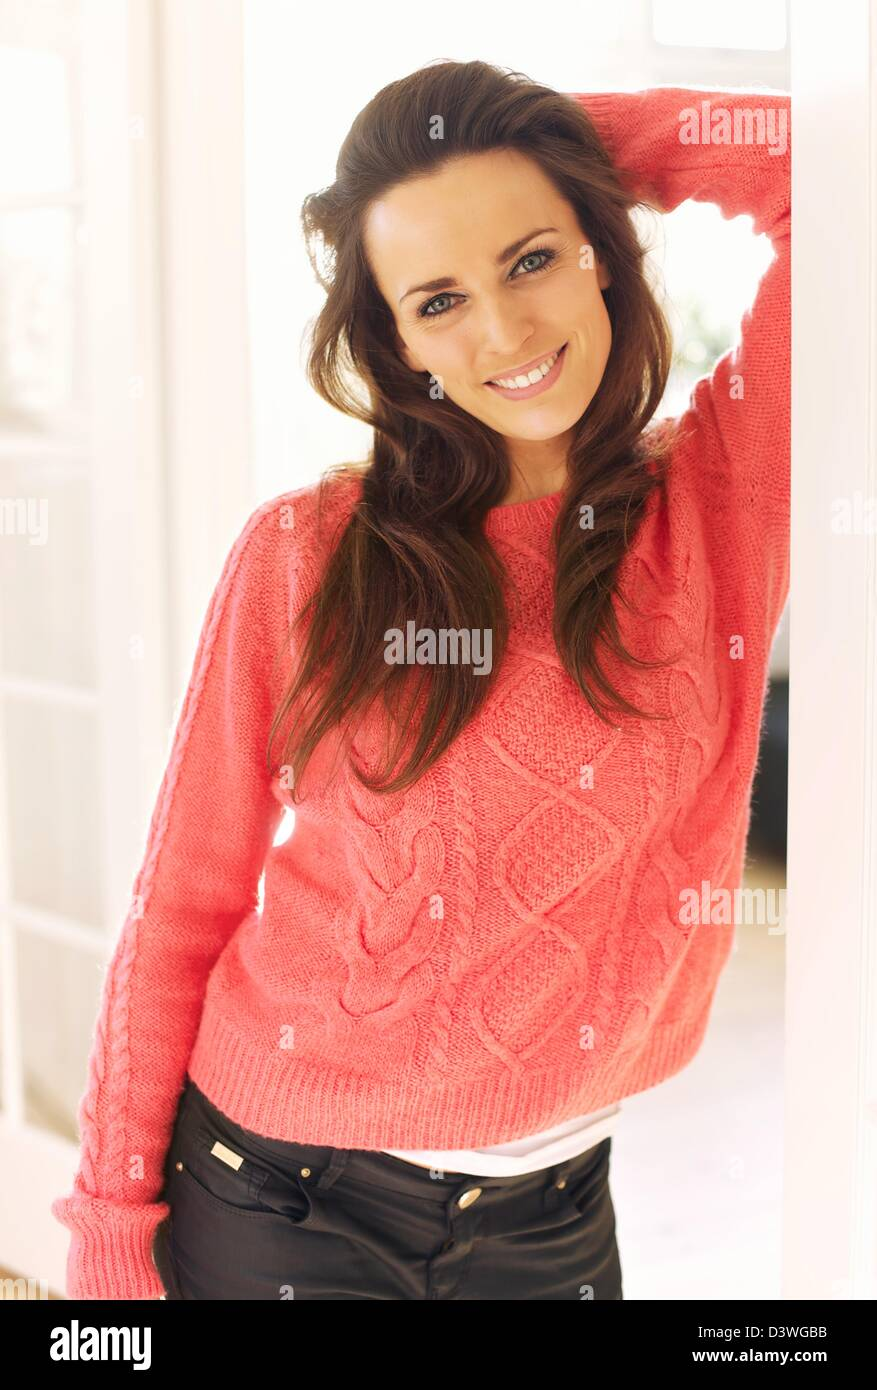 Portrait of a cheerful indoor woman with a sweater standing inside her home - Stock Image